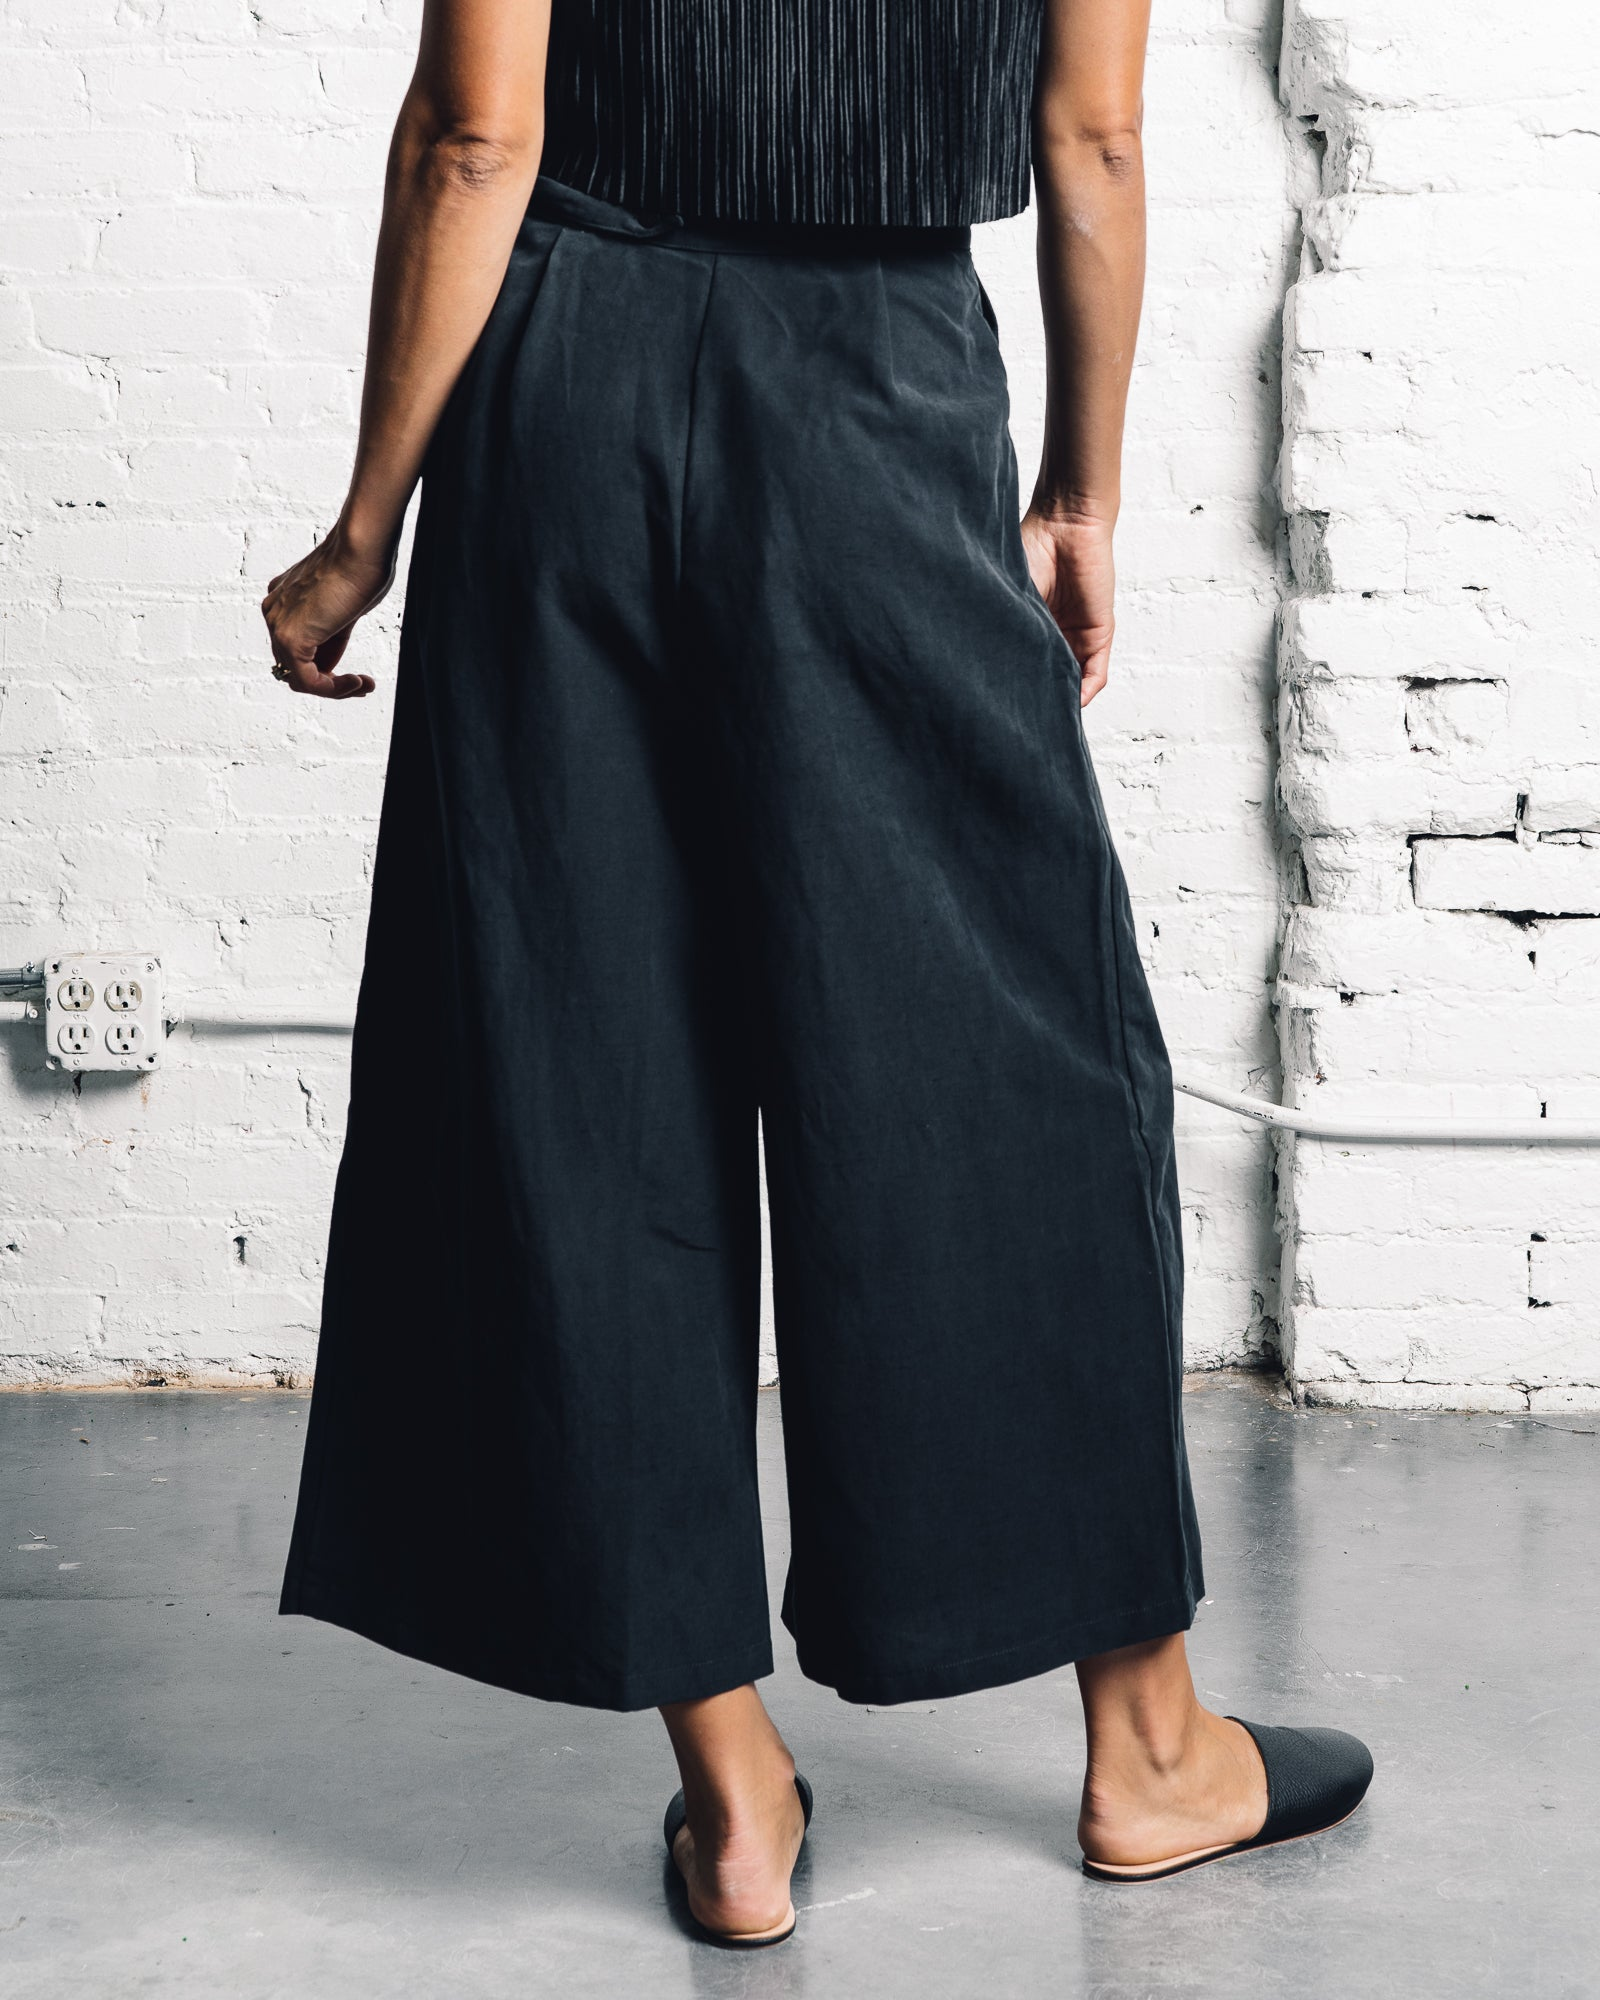 Ozma Studio Pant, Black